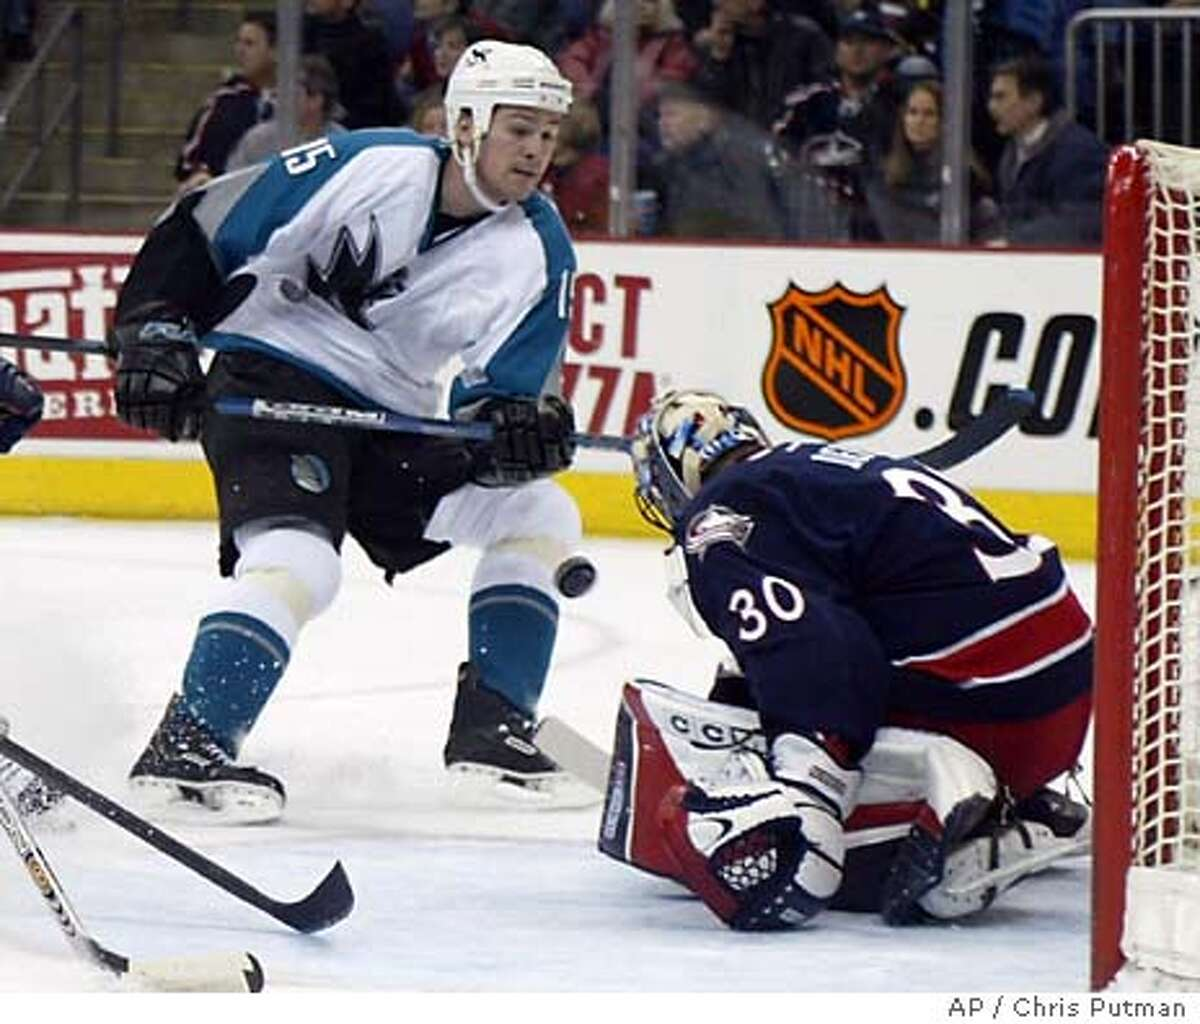 San Jose Sharks' Wayne Primeau (15) fires a shot at Columbus Blue Jackets goalie Marc Denis (3) during the first period in Columbus, Ohio, Saturday, Feb. 14, 2004. (AP Photo/Chris Putman) Wayne (above) and Keith (left, #25) Primeau still play each other tough, but following their mothers explicit instructions, dropping the gloves and fighting is in the past. ProductNameChronicle Wayne Primeau, above, and brother Keith, No. 25, still play each other tough, but following their mothers explicit instructions, dropping the gloves and fighting is in the past.